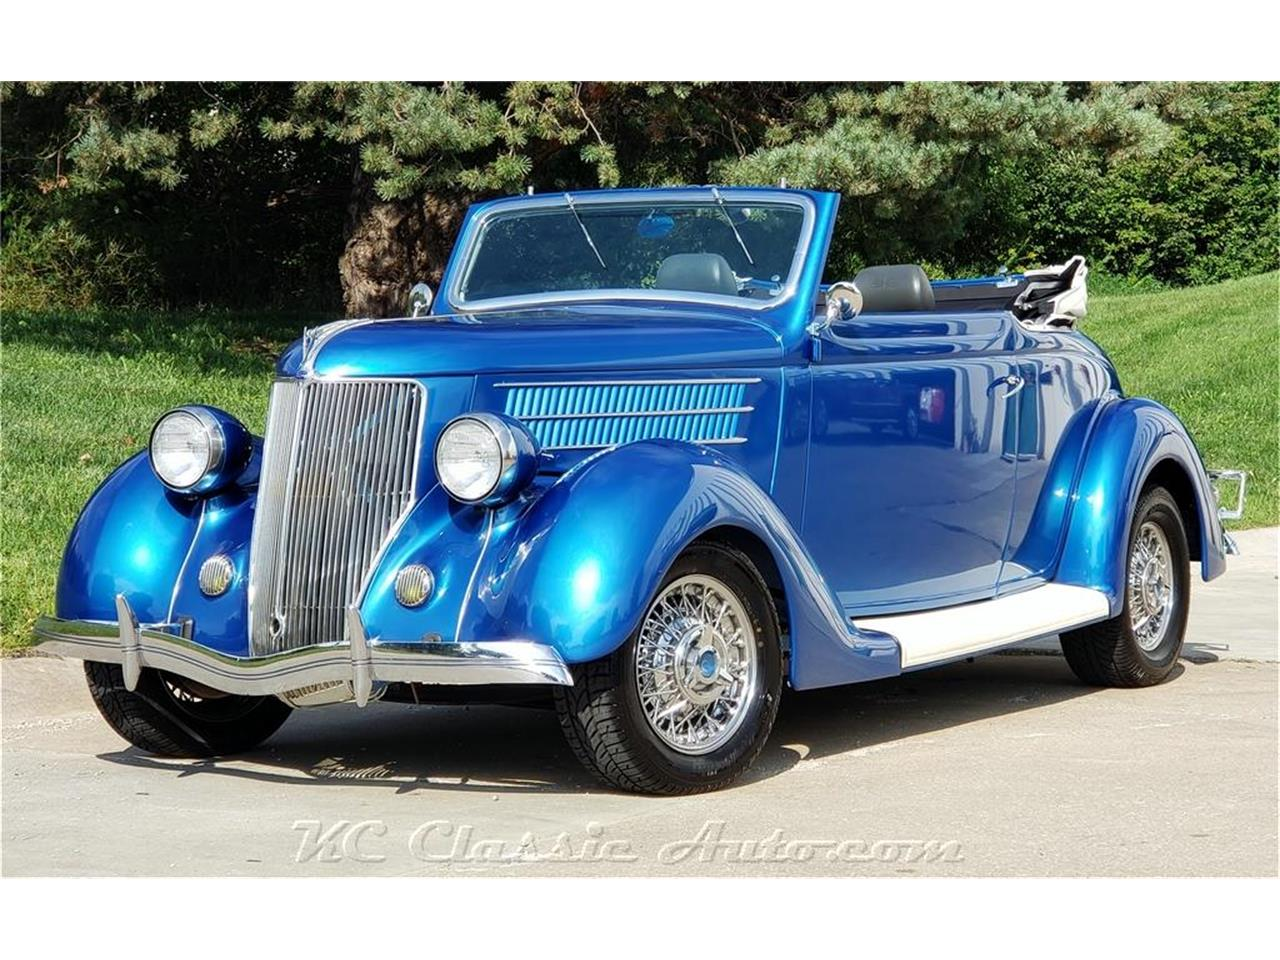 for sale 1936 ford cabriolet in lenexa, kansas cars - shawnee mission, ks at geebo